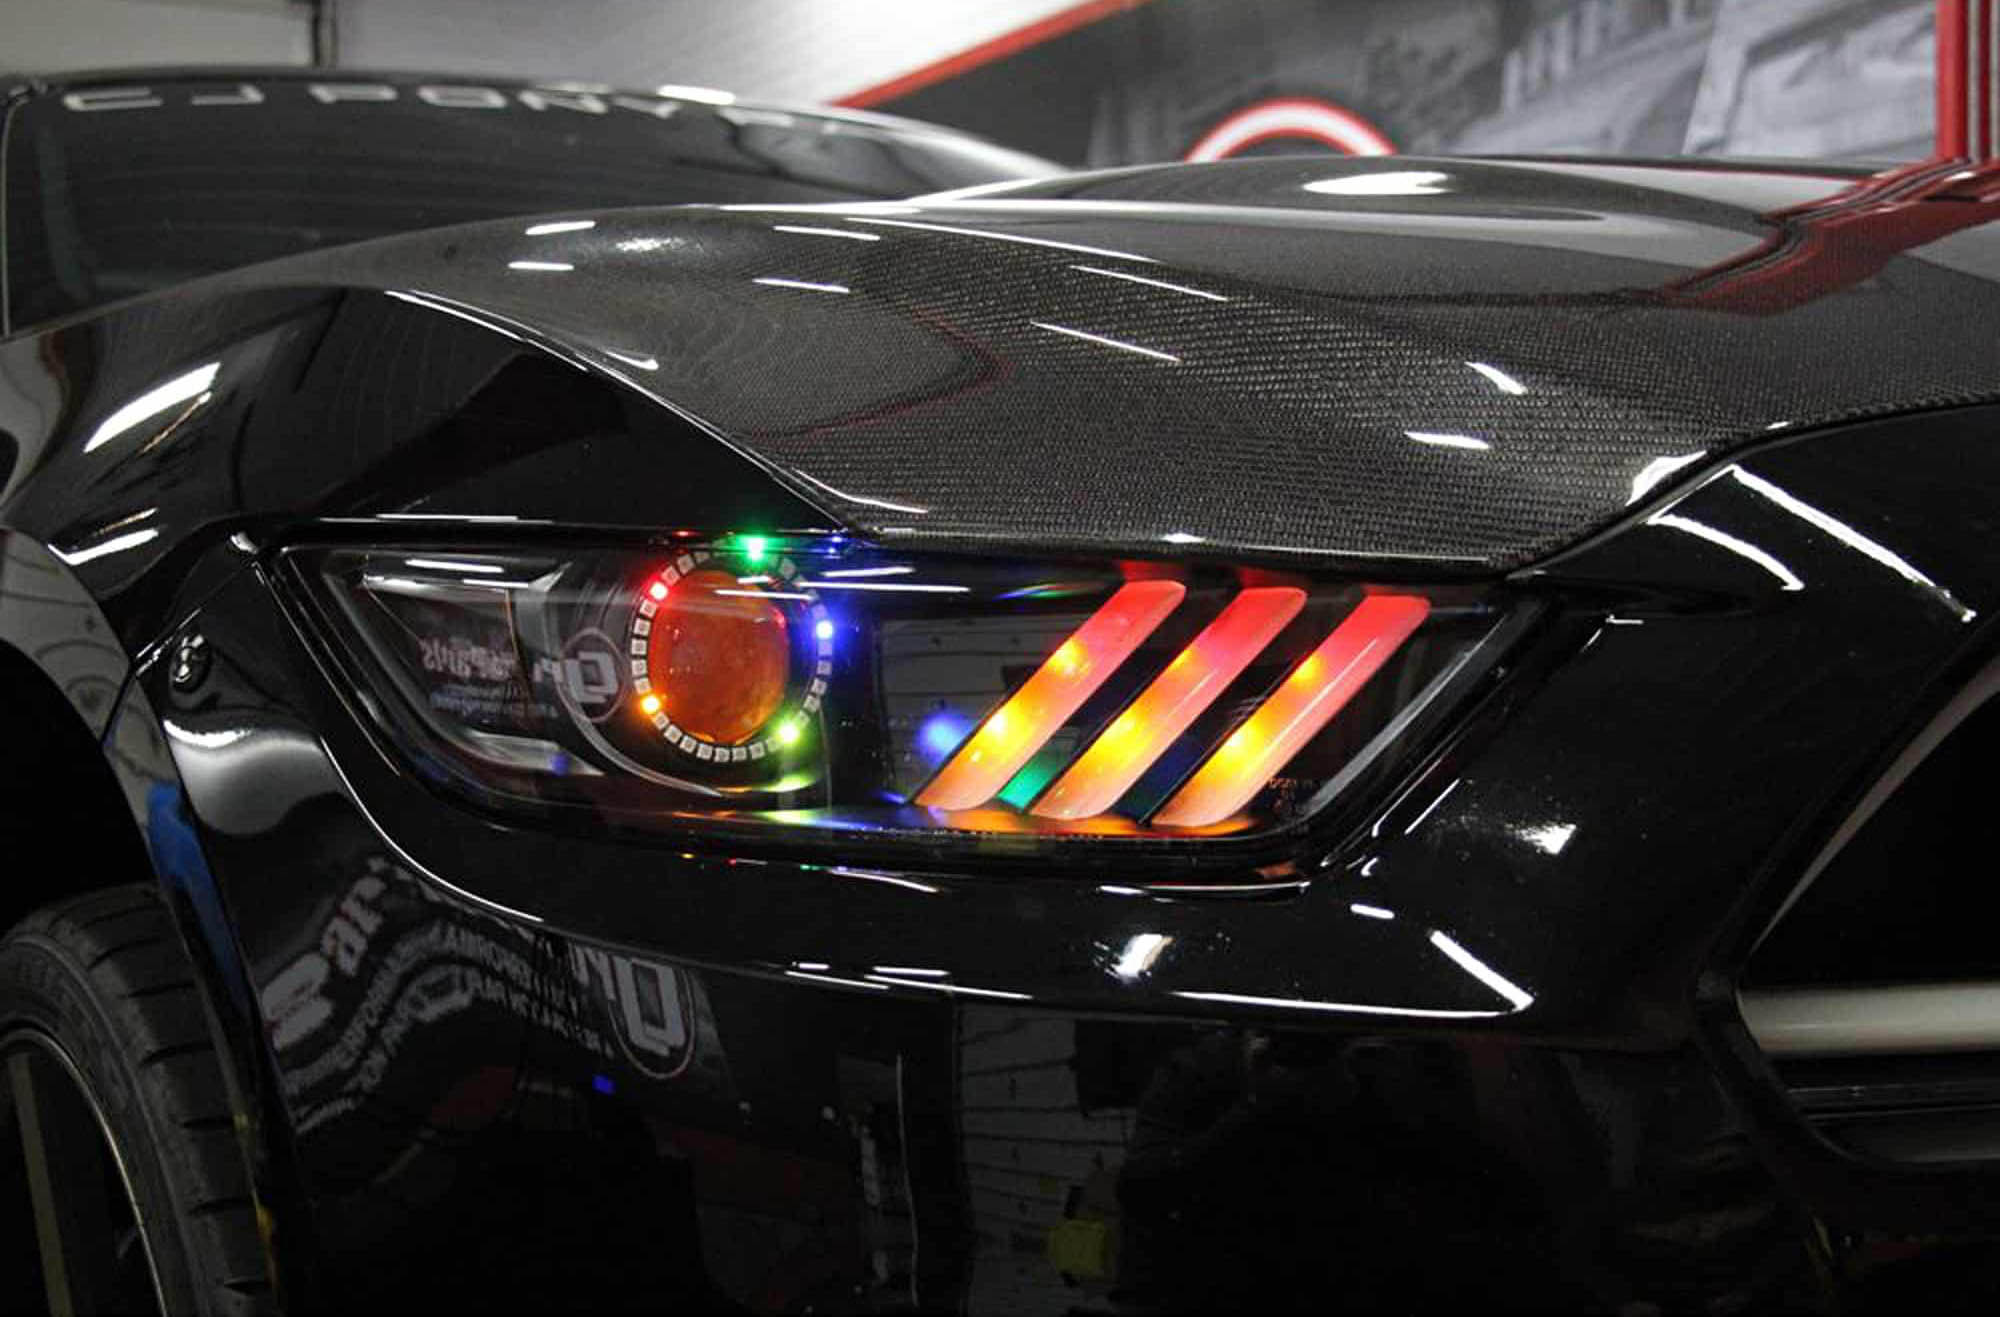 Oracle S550 headlights with Colorshift